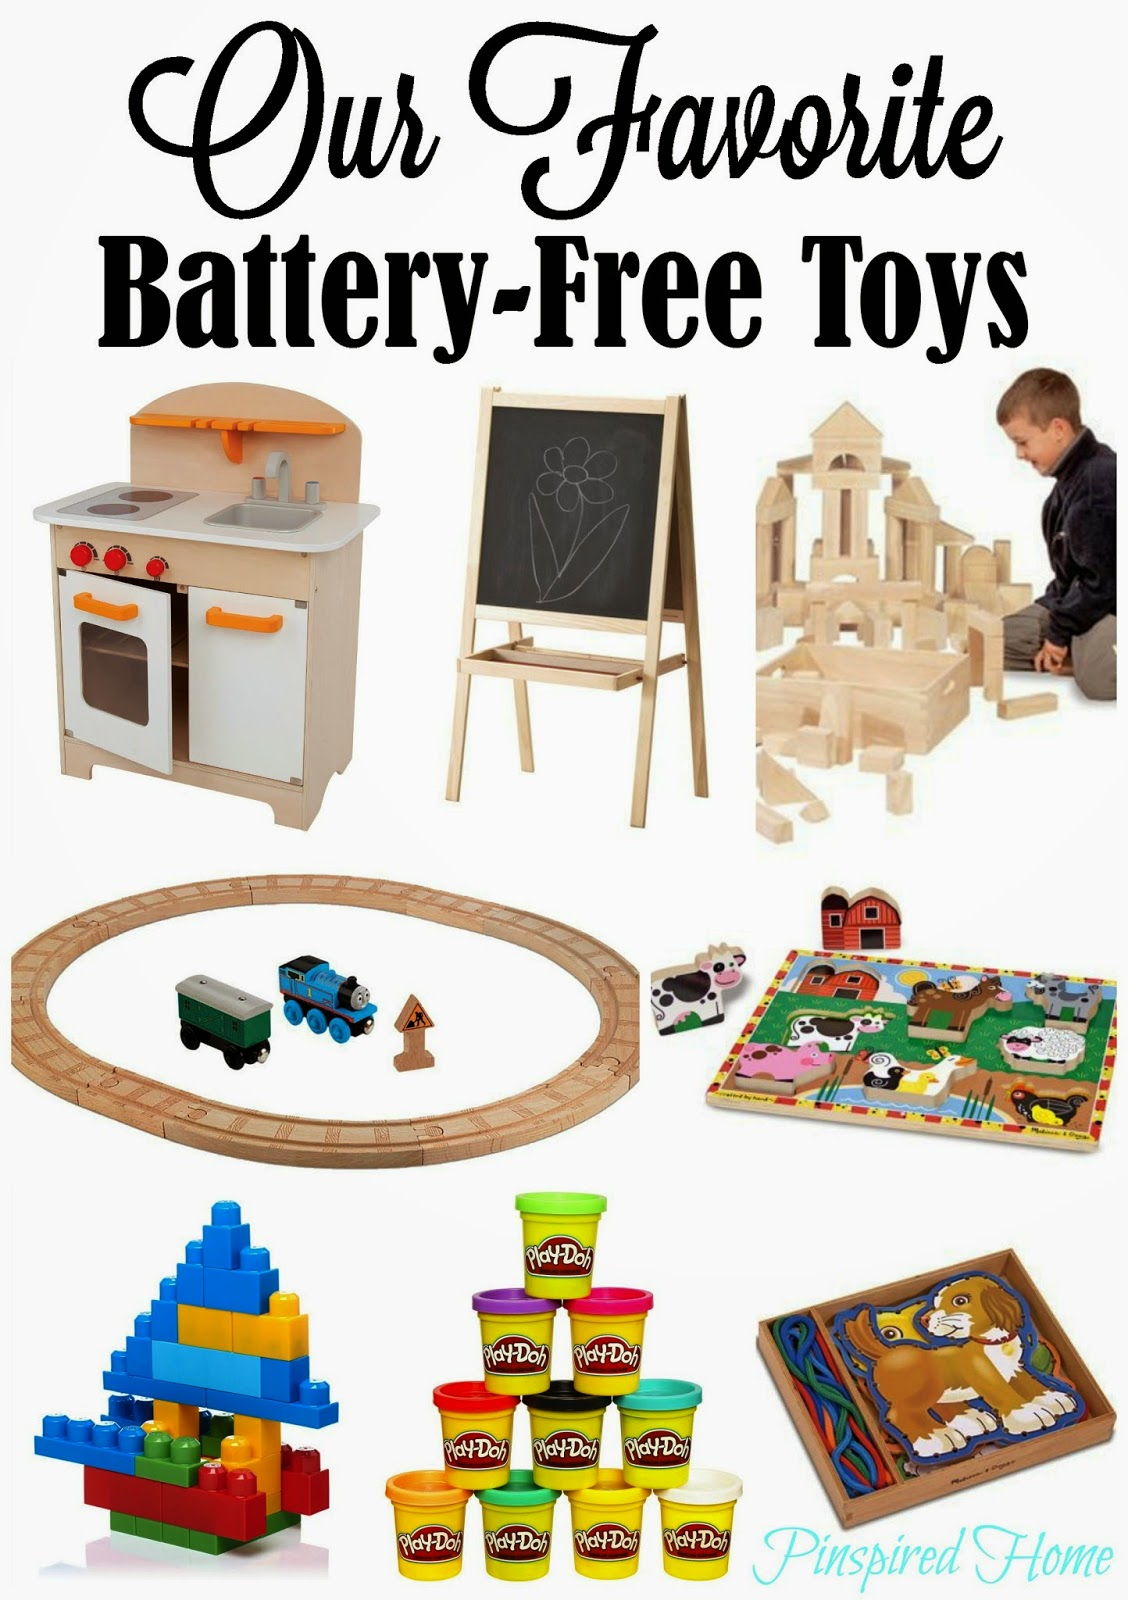 http://pinspiredhome.blogspot.com/2014/12/our-favorite-battery-free-toys-simpler.html